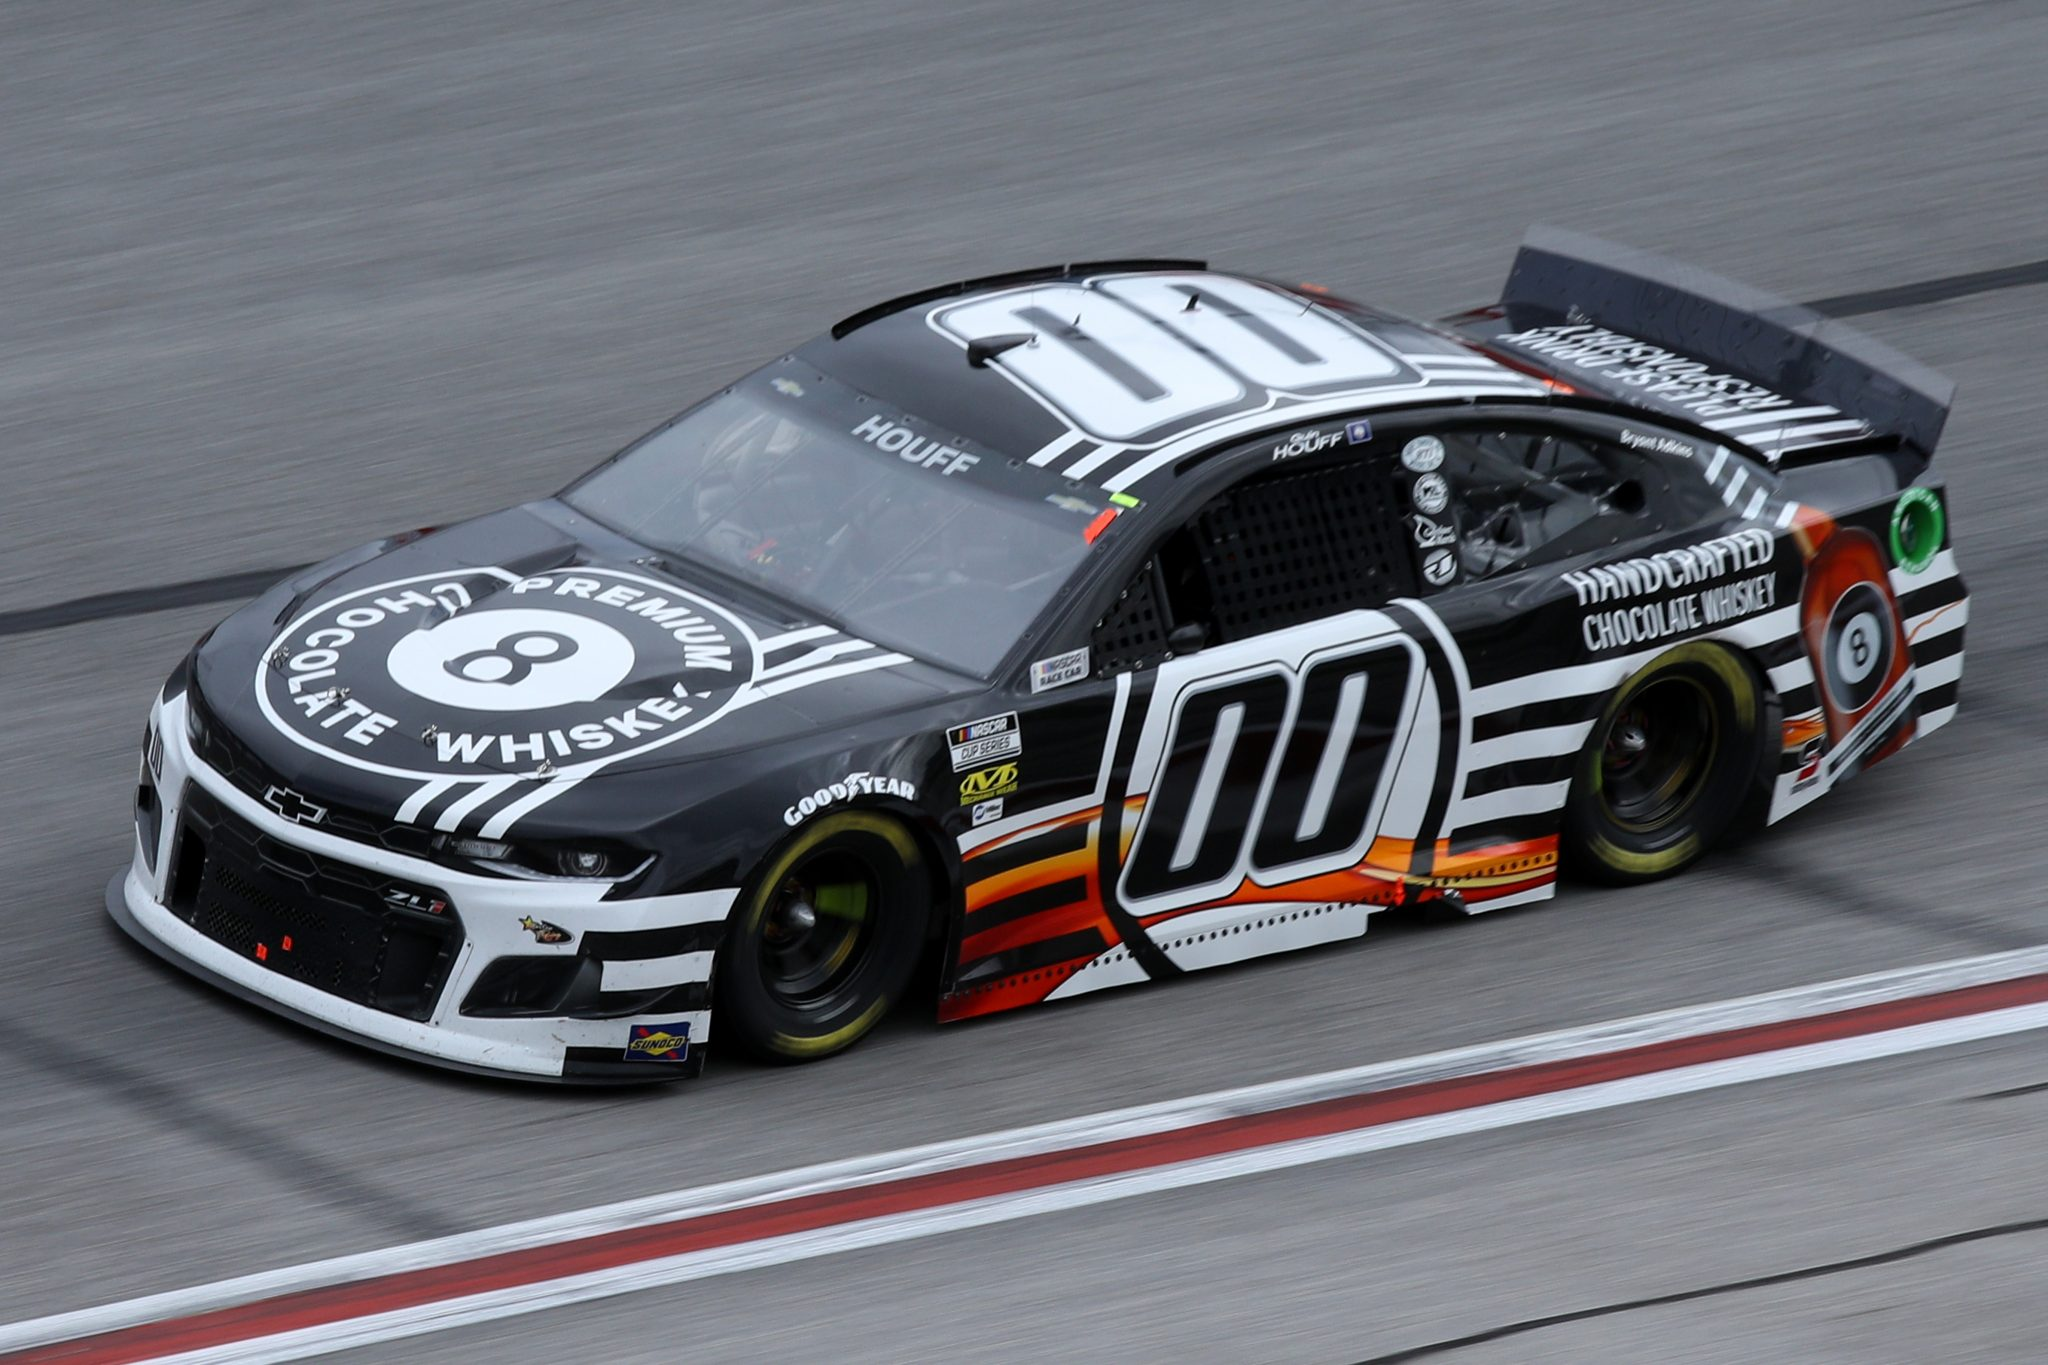 HAMPTON, GEORGIA - MARCH 21: Quin Houff, driver of the #00 8 Ball Chocolate Whiskey Chevrolet, drives during the NASCAR Cup Series Folds of Honor QuikTrip 500 at Atlanta Motor Speedway on March 21, 2021 in Hampton, Georgia. (Photo by Sean Gardner/Getty Images) | Getty Images